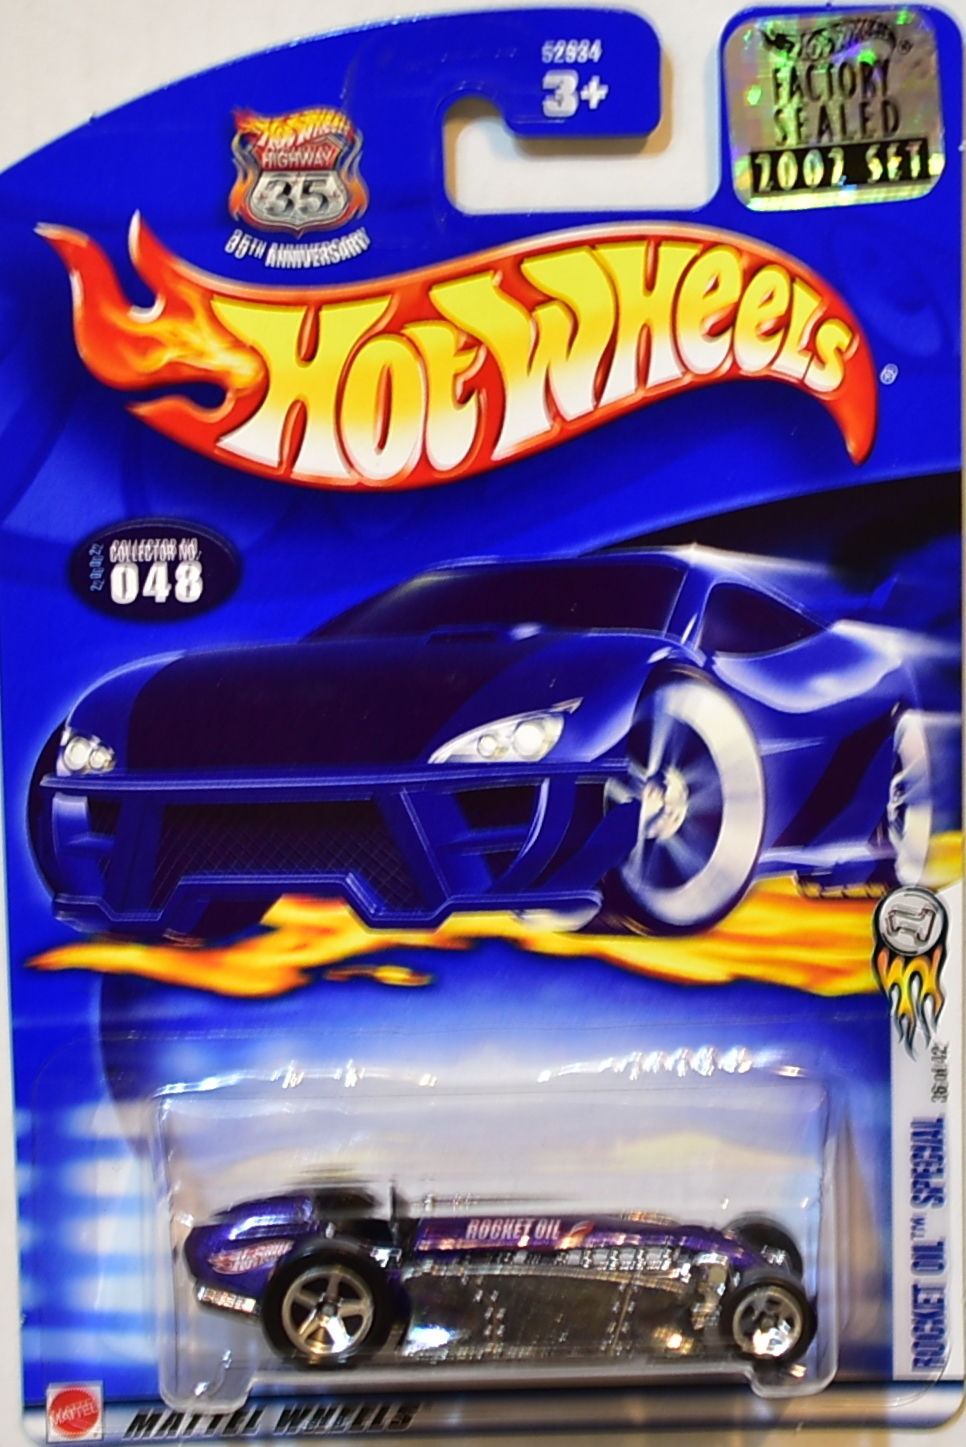 HOT WHEELS 2002 ROCKET OIL SPECIAL #048 FACTORY SEALED